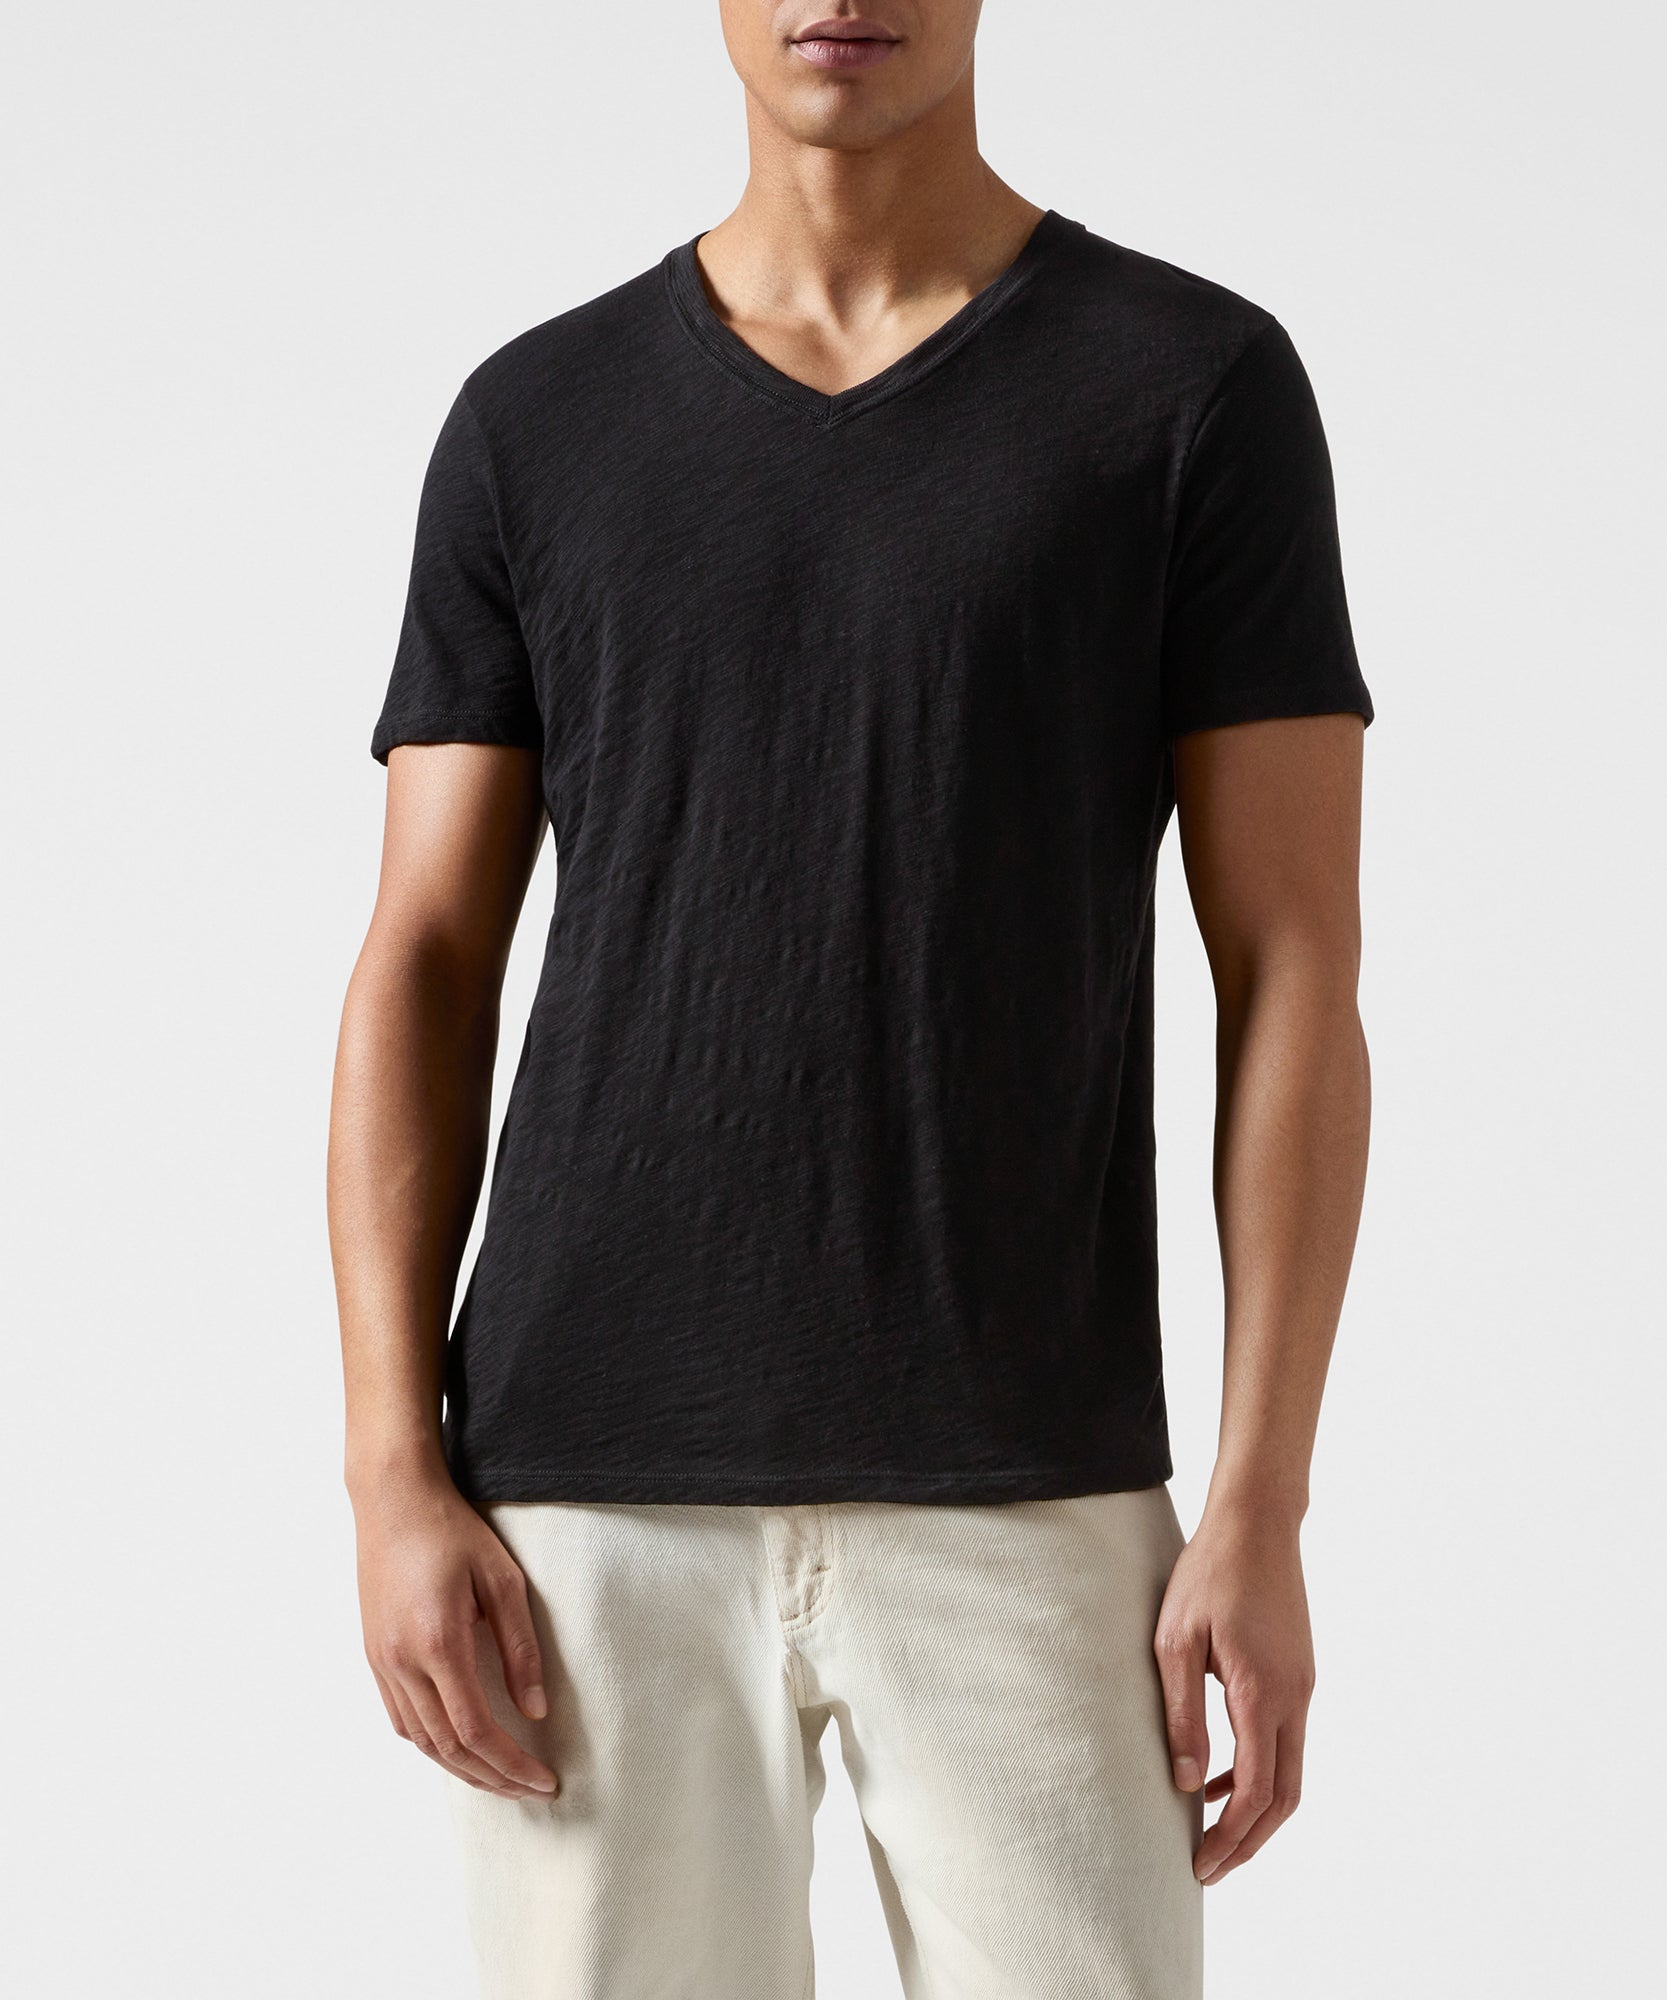 Black Slub Jersey V-Neck Tee - Men's Cotton Short Sleeve Tee by ATM Anthony Thomas Melillo